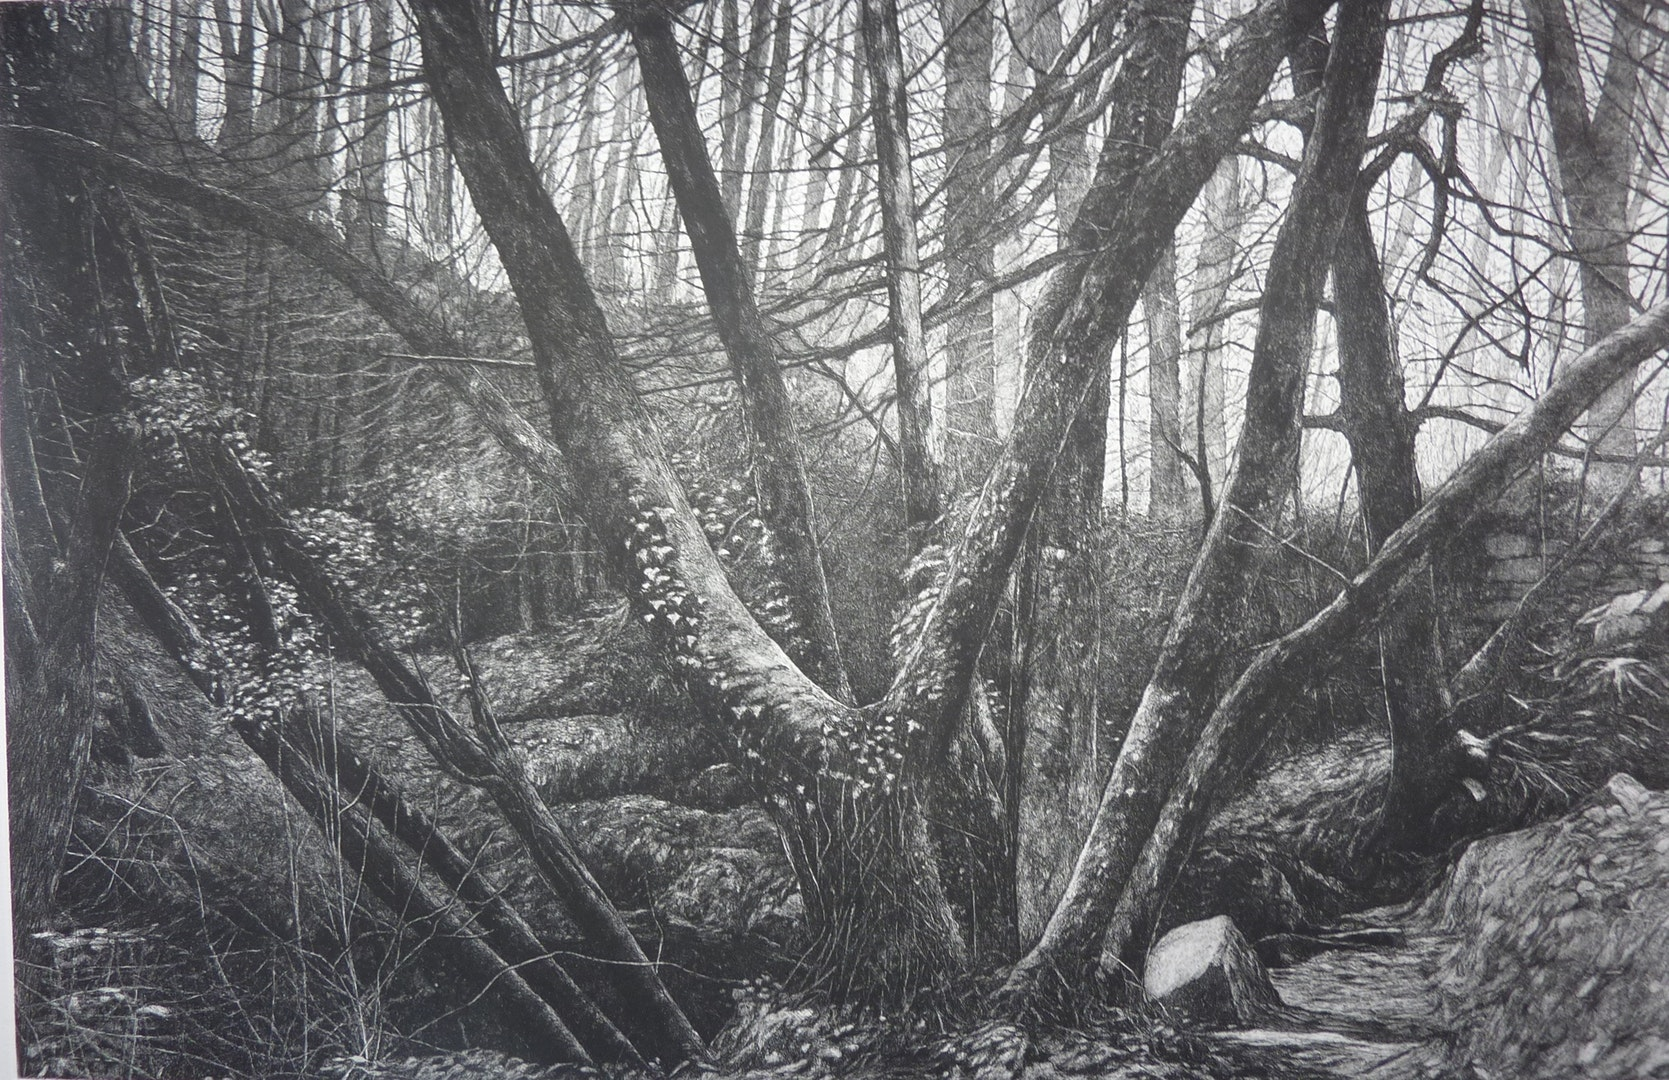 'Kennall Vale Cornwall Study 1', John Howard, Etching and aquatint on paper, 60.5 x 31 x 0.05 cm